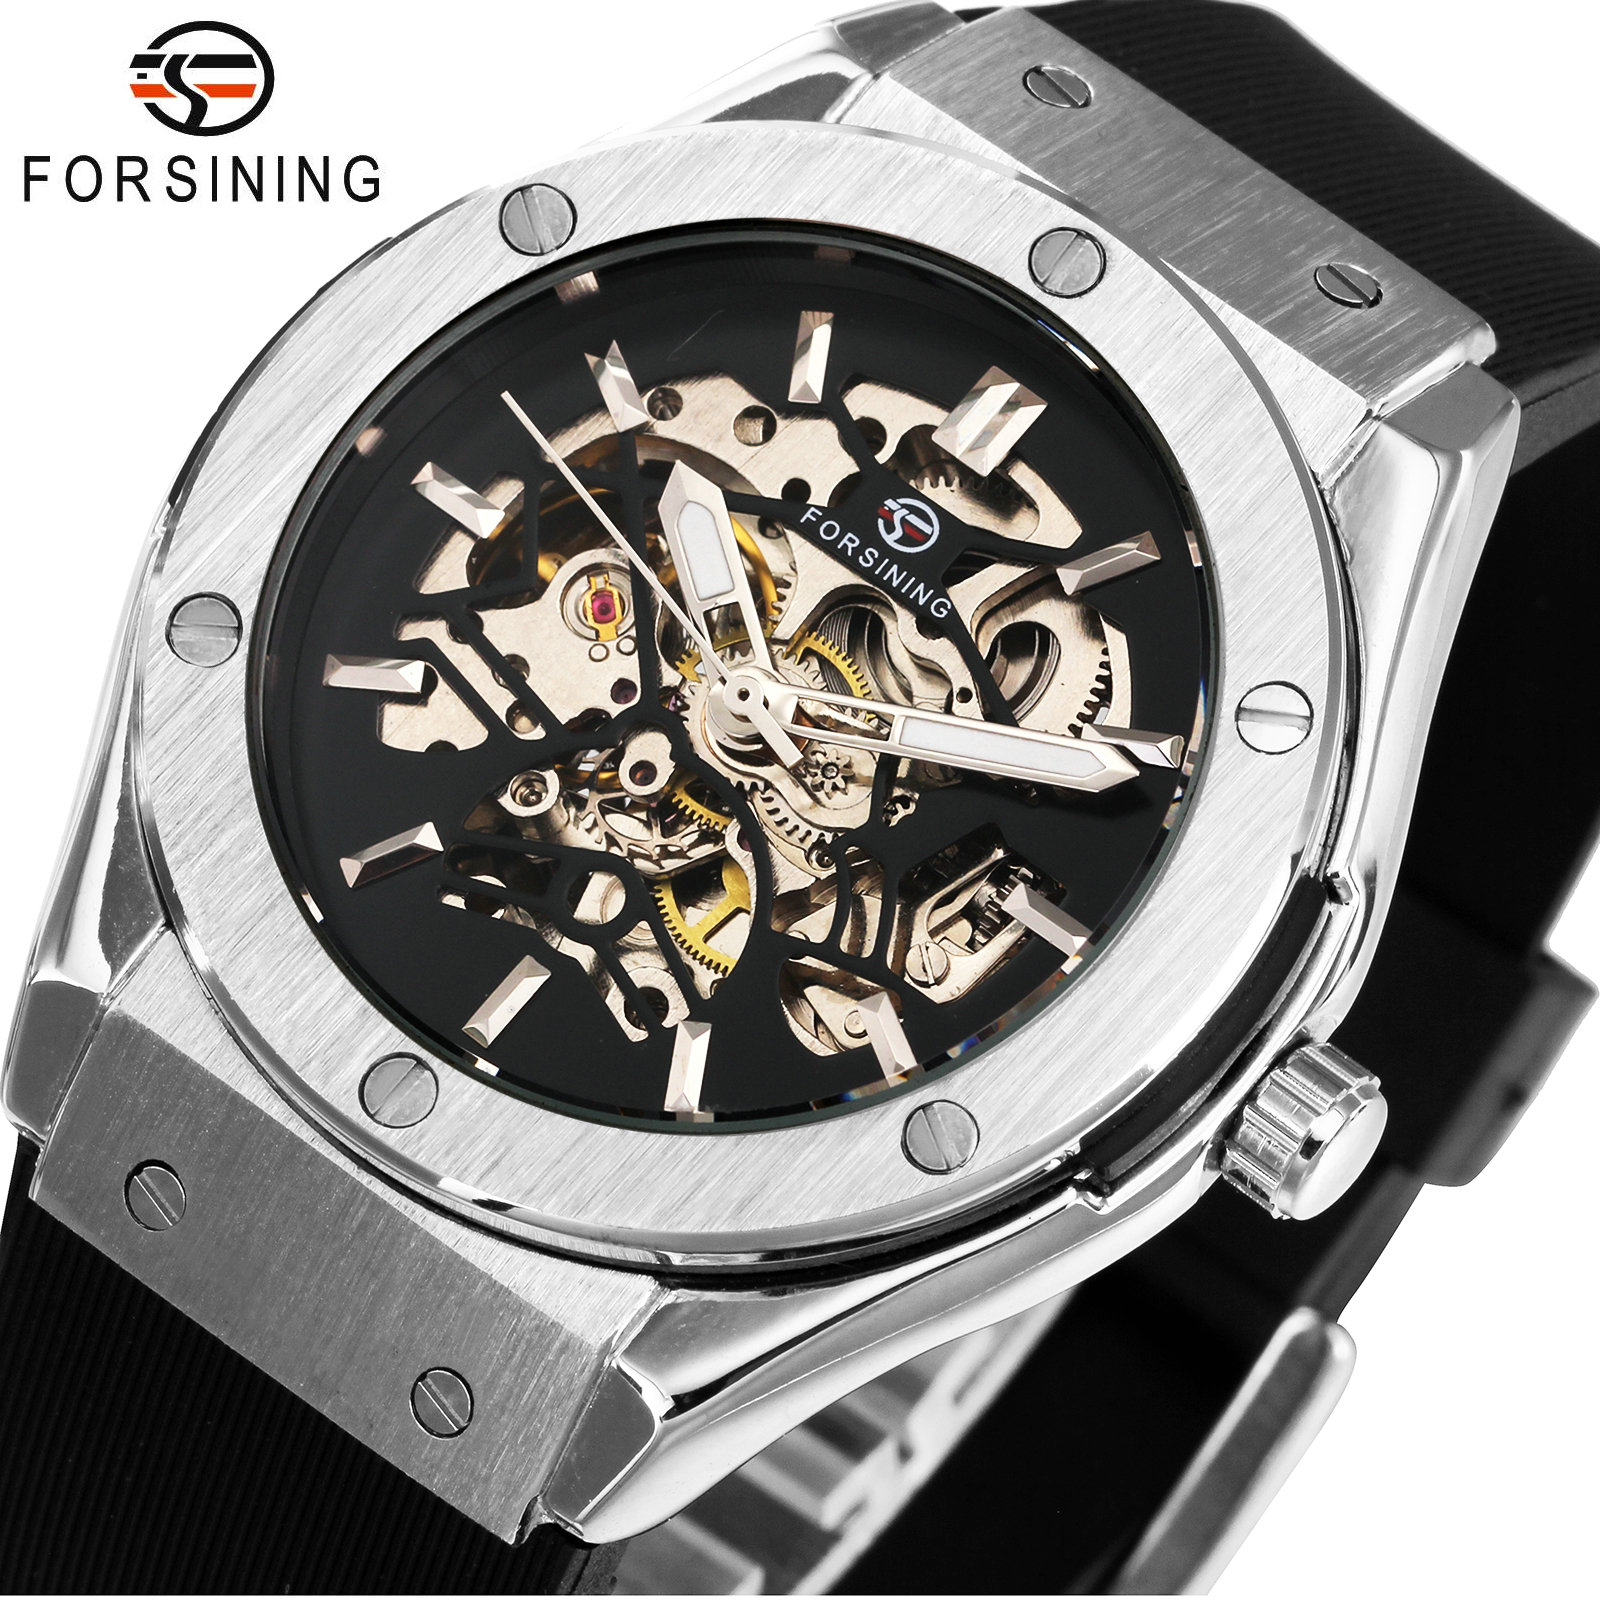 2019 New Mens Military Sport Automatic Mechanical Watches Skeleton Dial Wrist Watches Silicone Band Relogio masculino Gift +BOX2019 New Mens Military Sport Automatic Mechanical Watches Skeleton Dial Wrist Watches Silicone Band Relogio masculino Gift +BOX